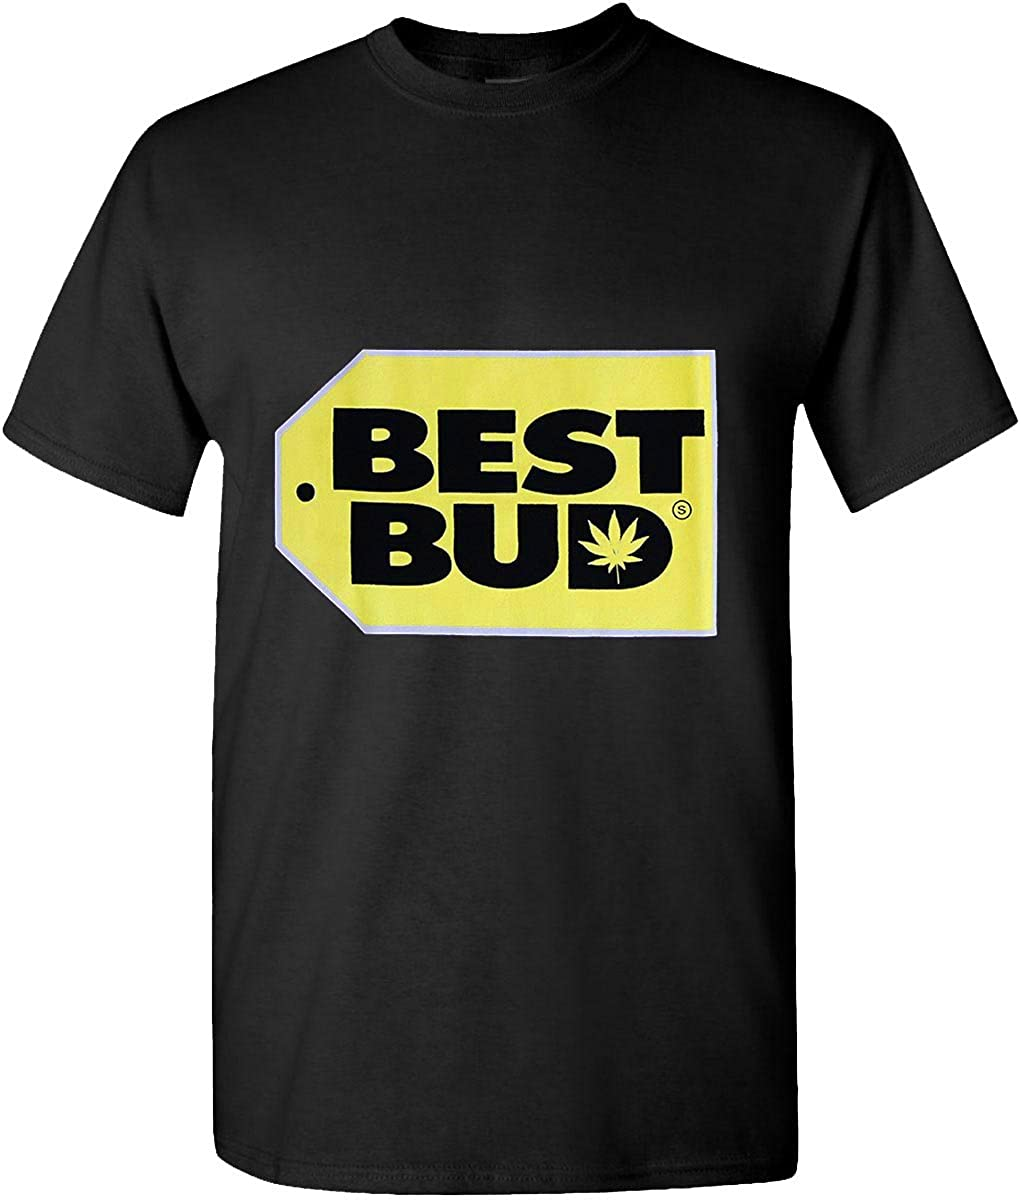 9938cacfc Premium 100% Cotton Imported Marijuana Weed Leaf T Shirts Hip Hop Graphic  New Edition; Only Hatandbeyond is authorized to sell this Authentic Product  .